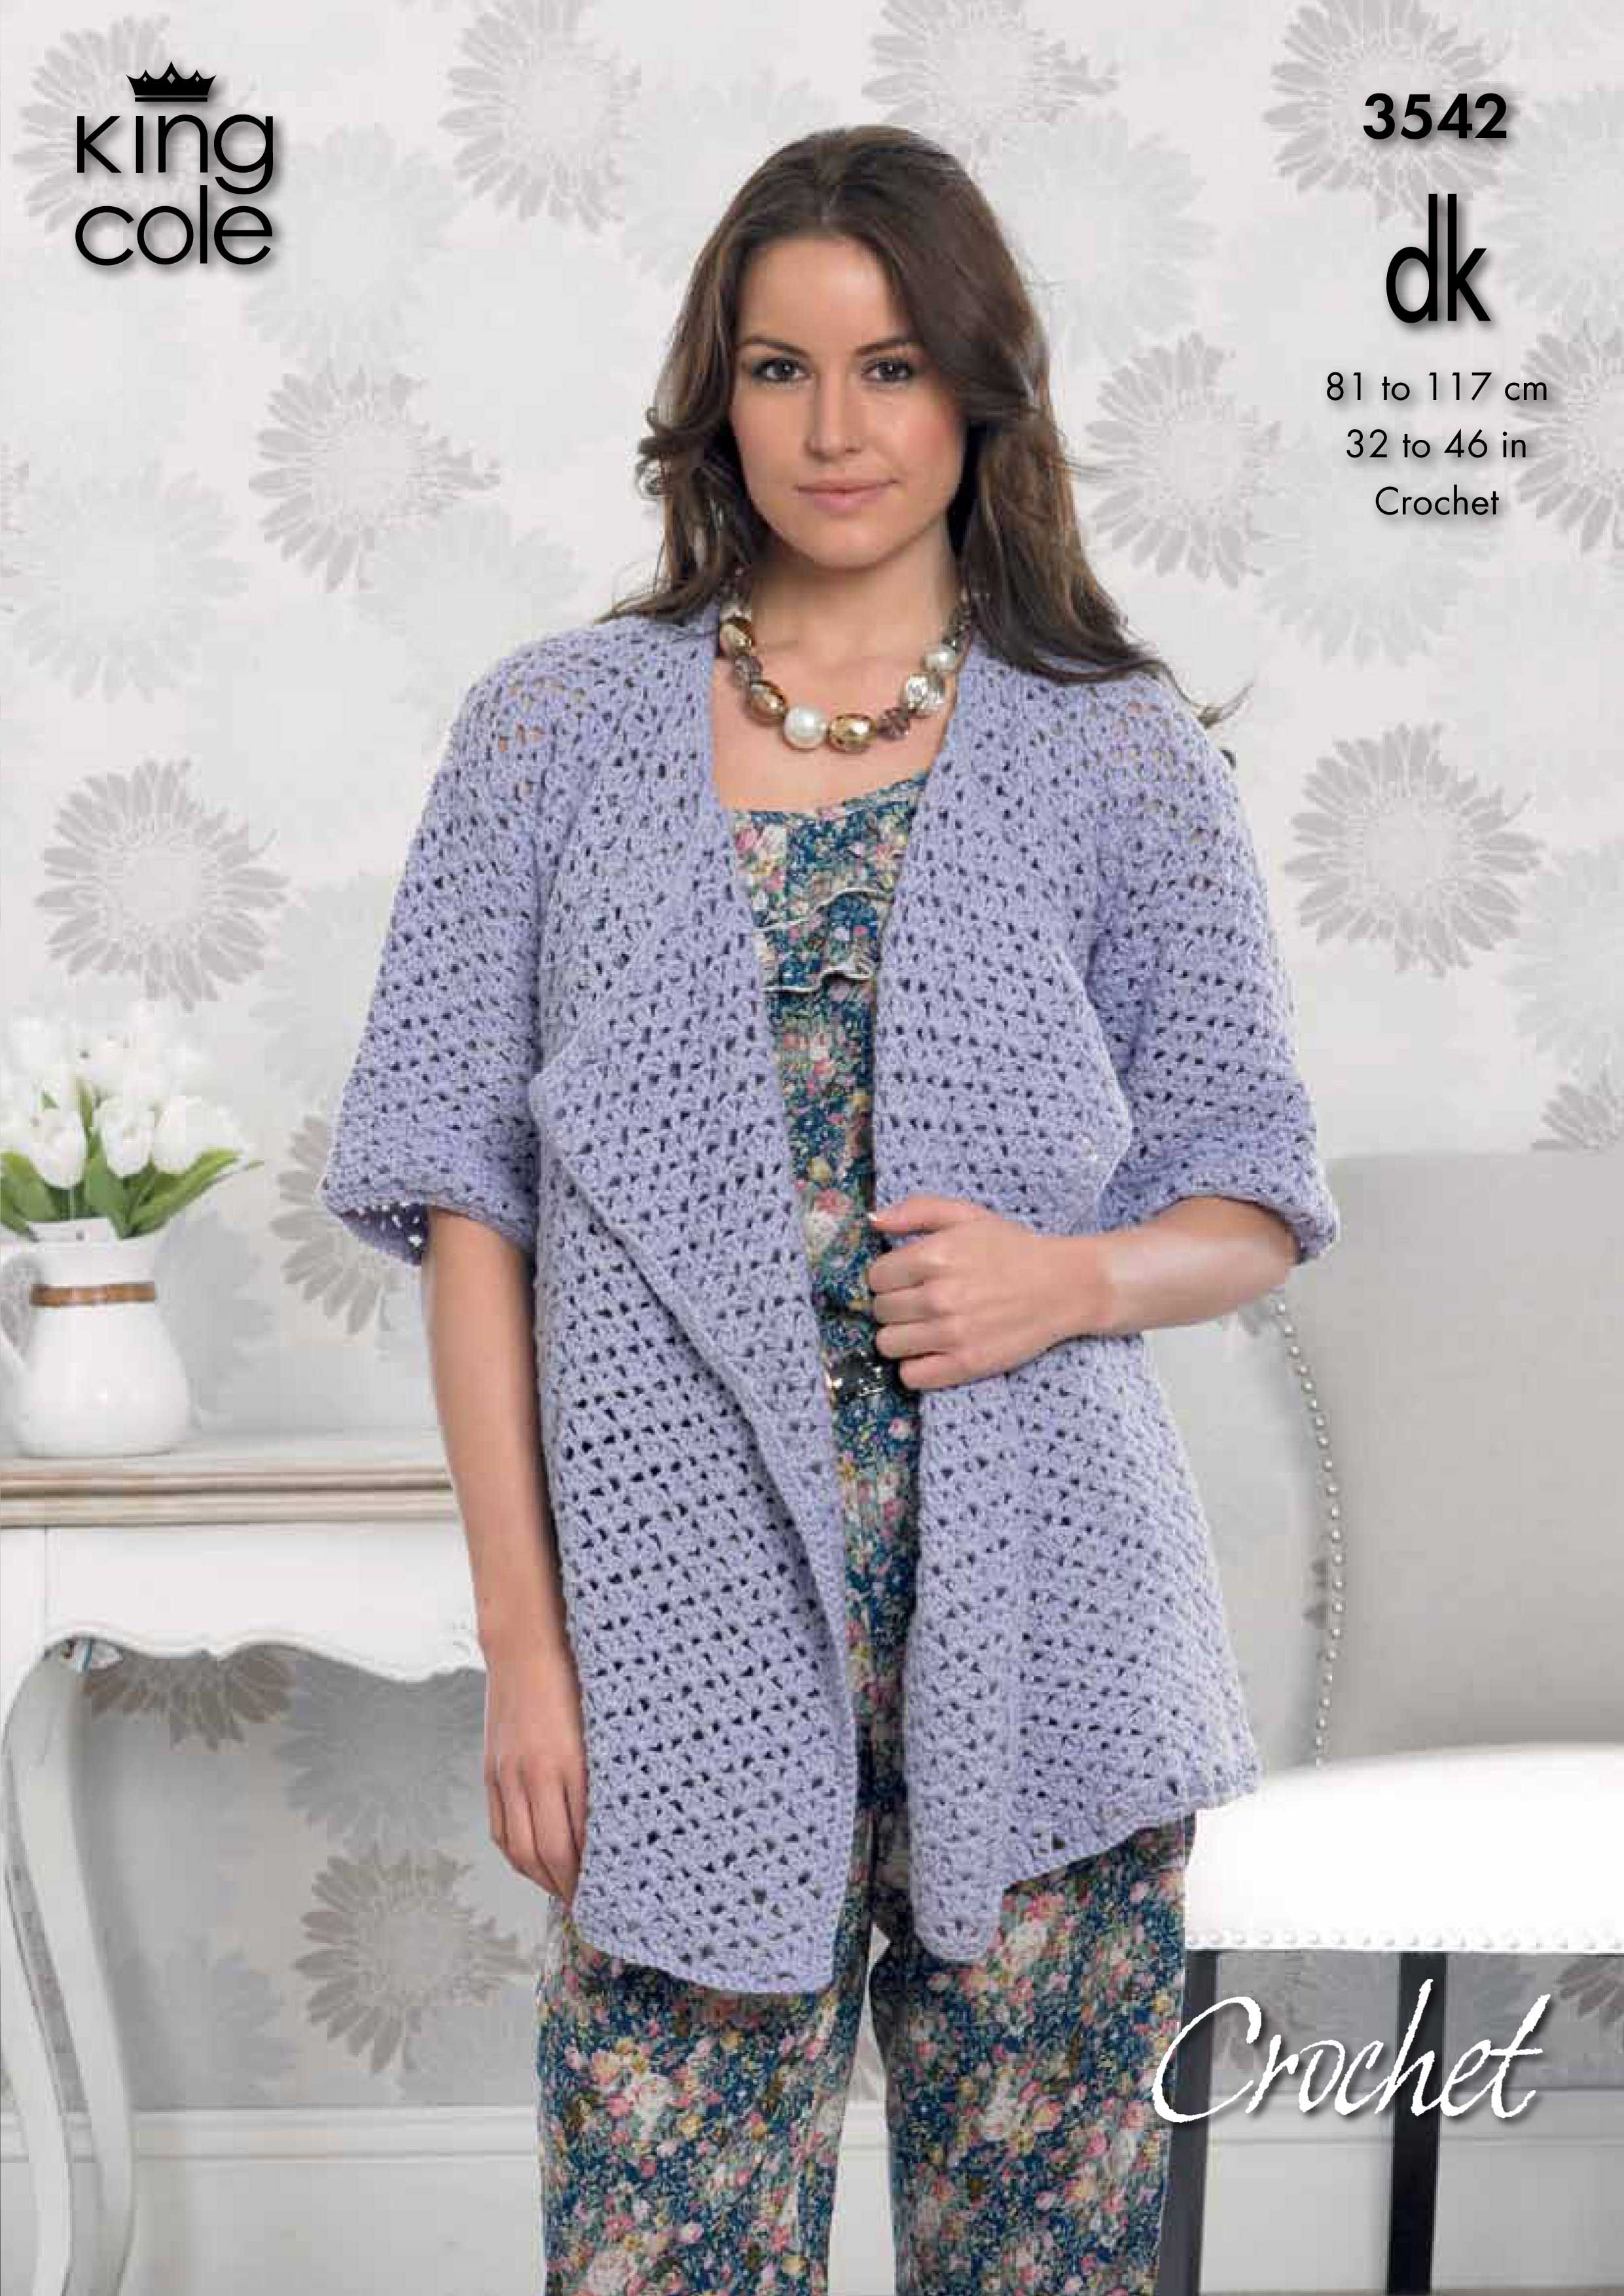 Crochet waterfall Cardigan mid sleeved - King Cole | Crochet ...